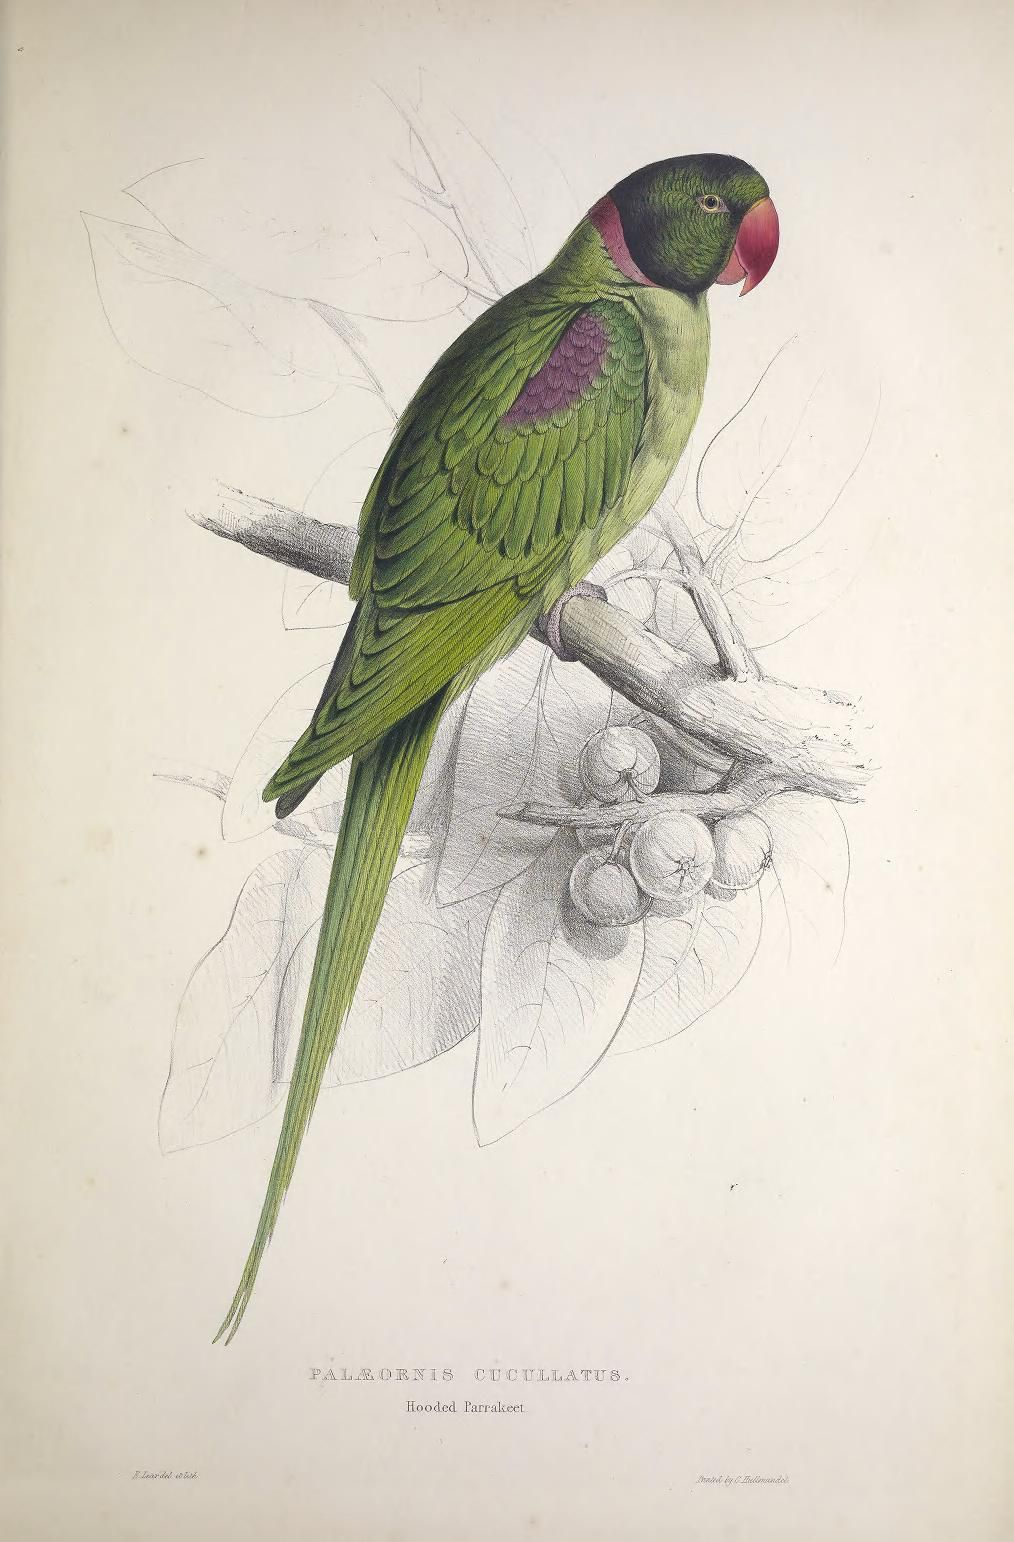 clip library download Illustrations of the psittacid. Parrots drawing family